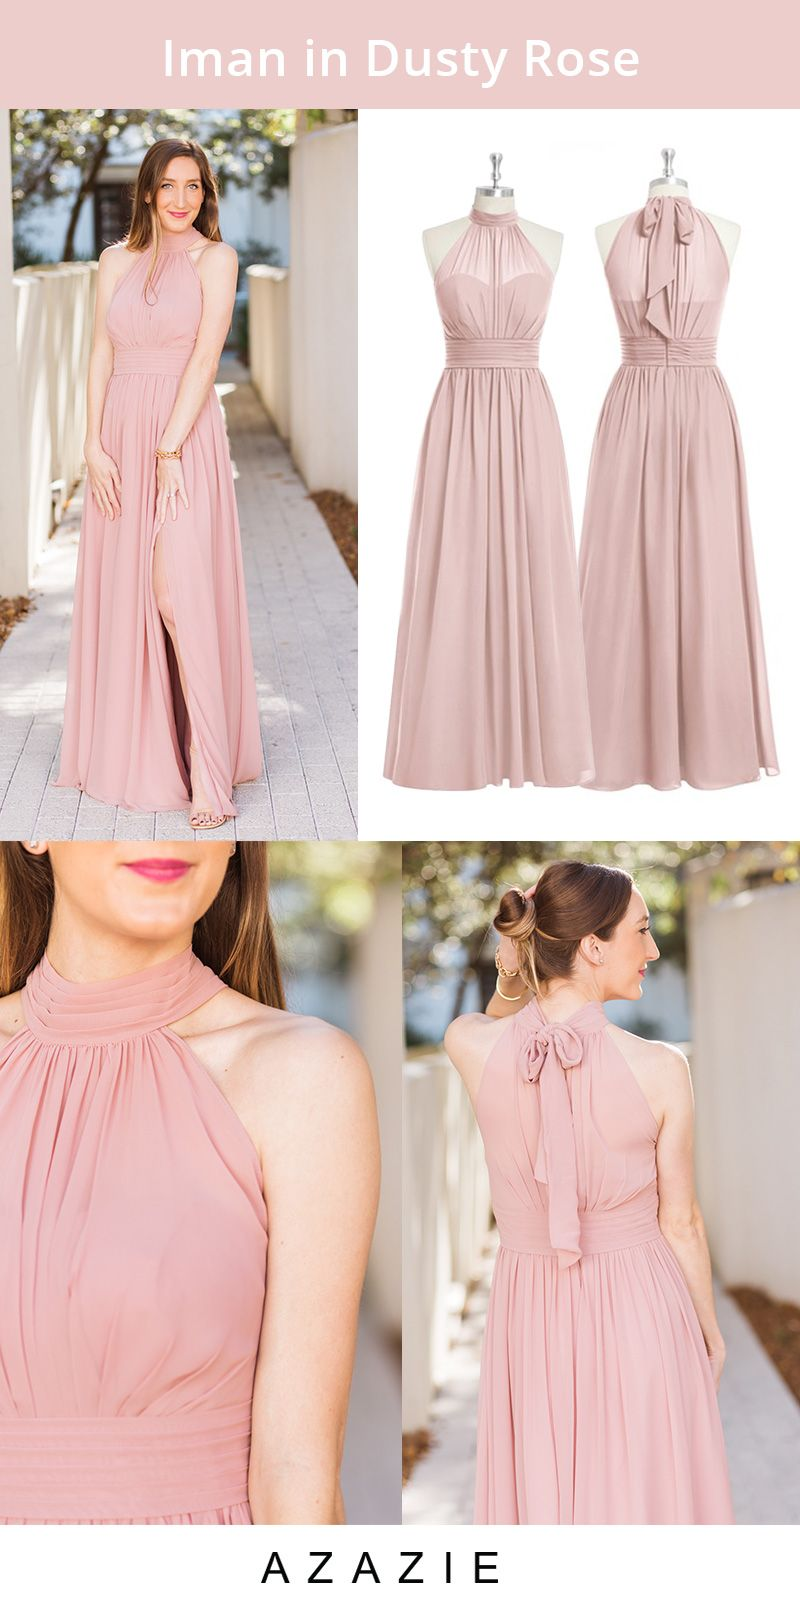 The Iman gown is romantic and elegant! Available in sizes 0-30 and free custom sizing! Every woman deserves their dream dress, that fits right while still being budget friendly!